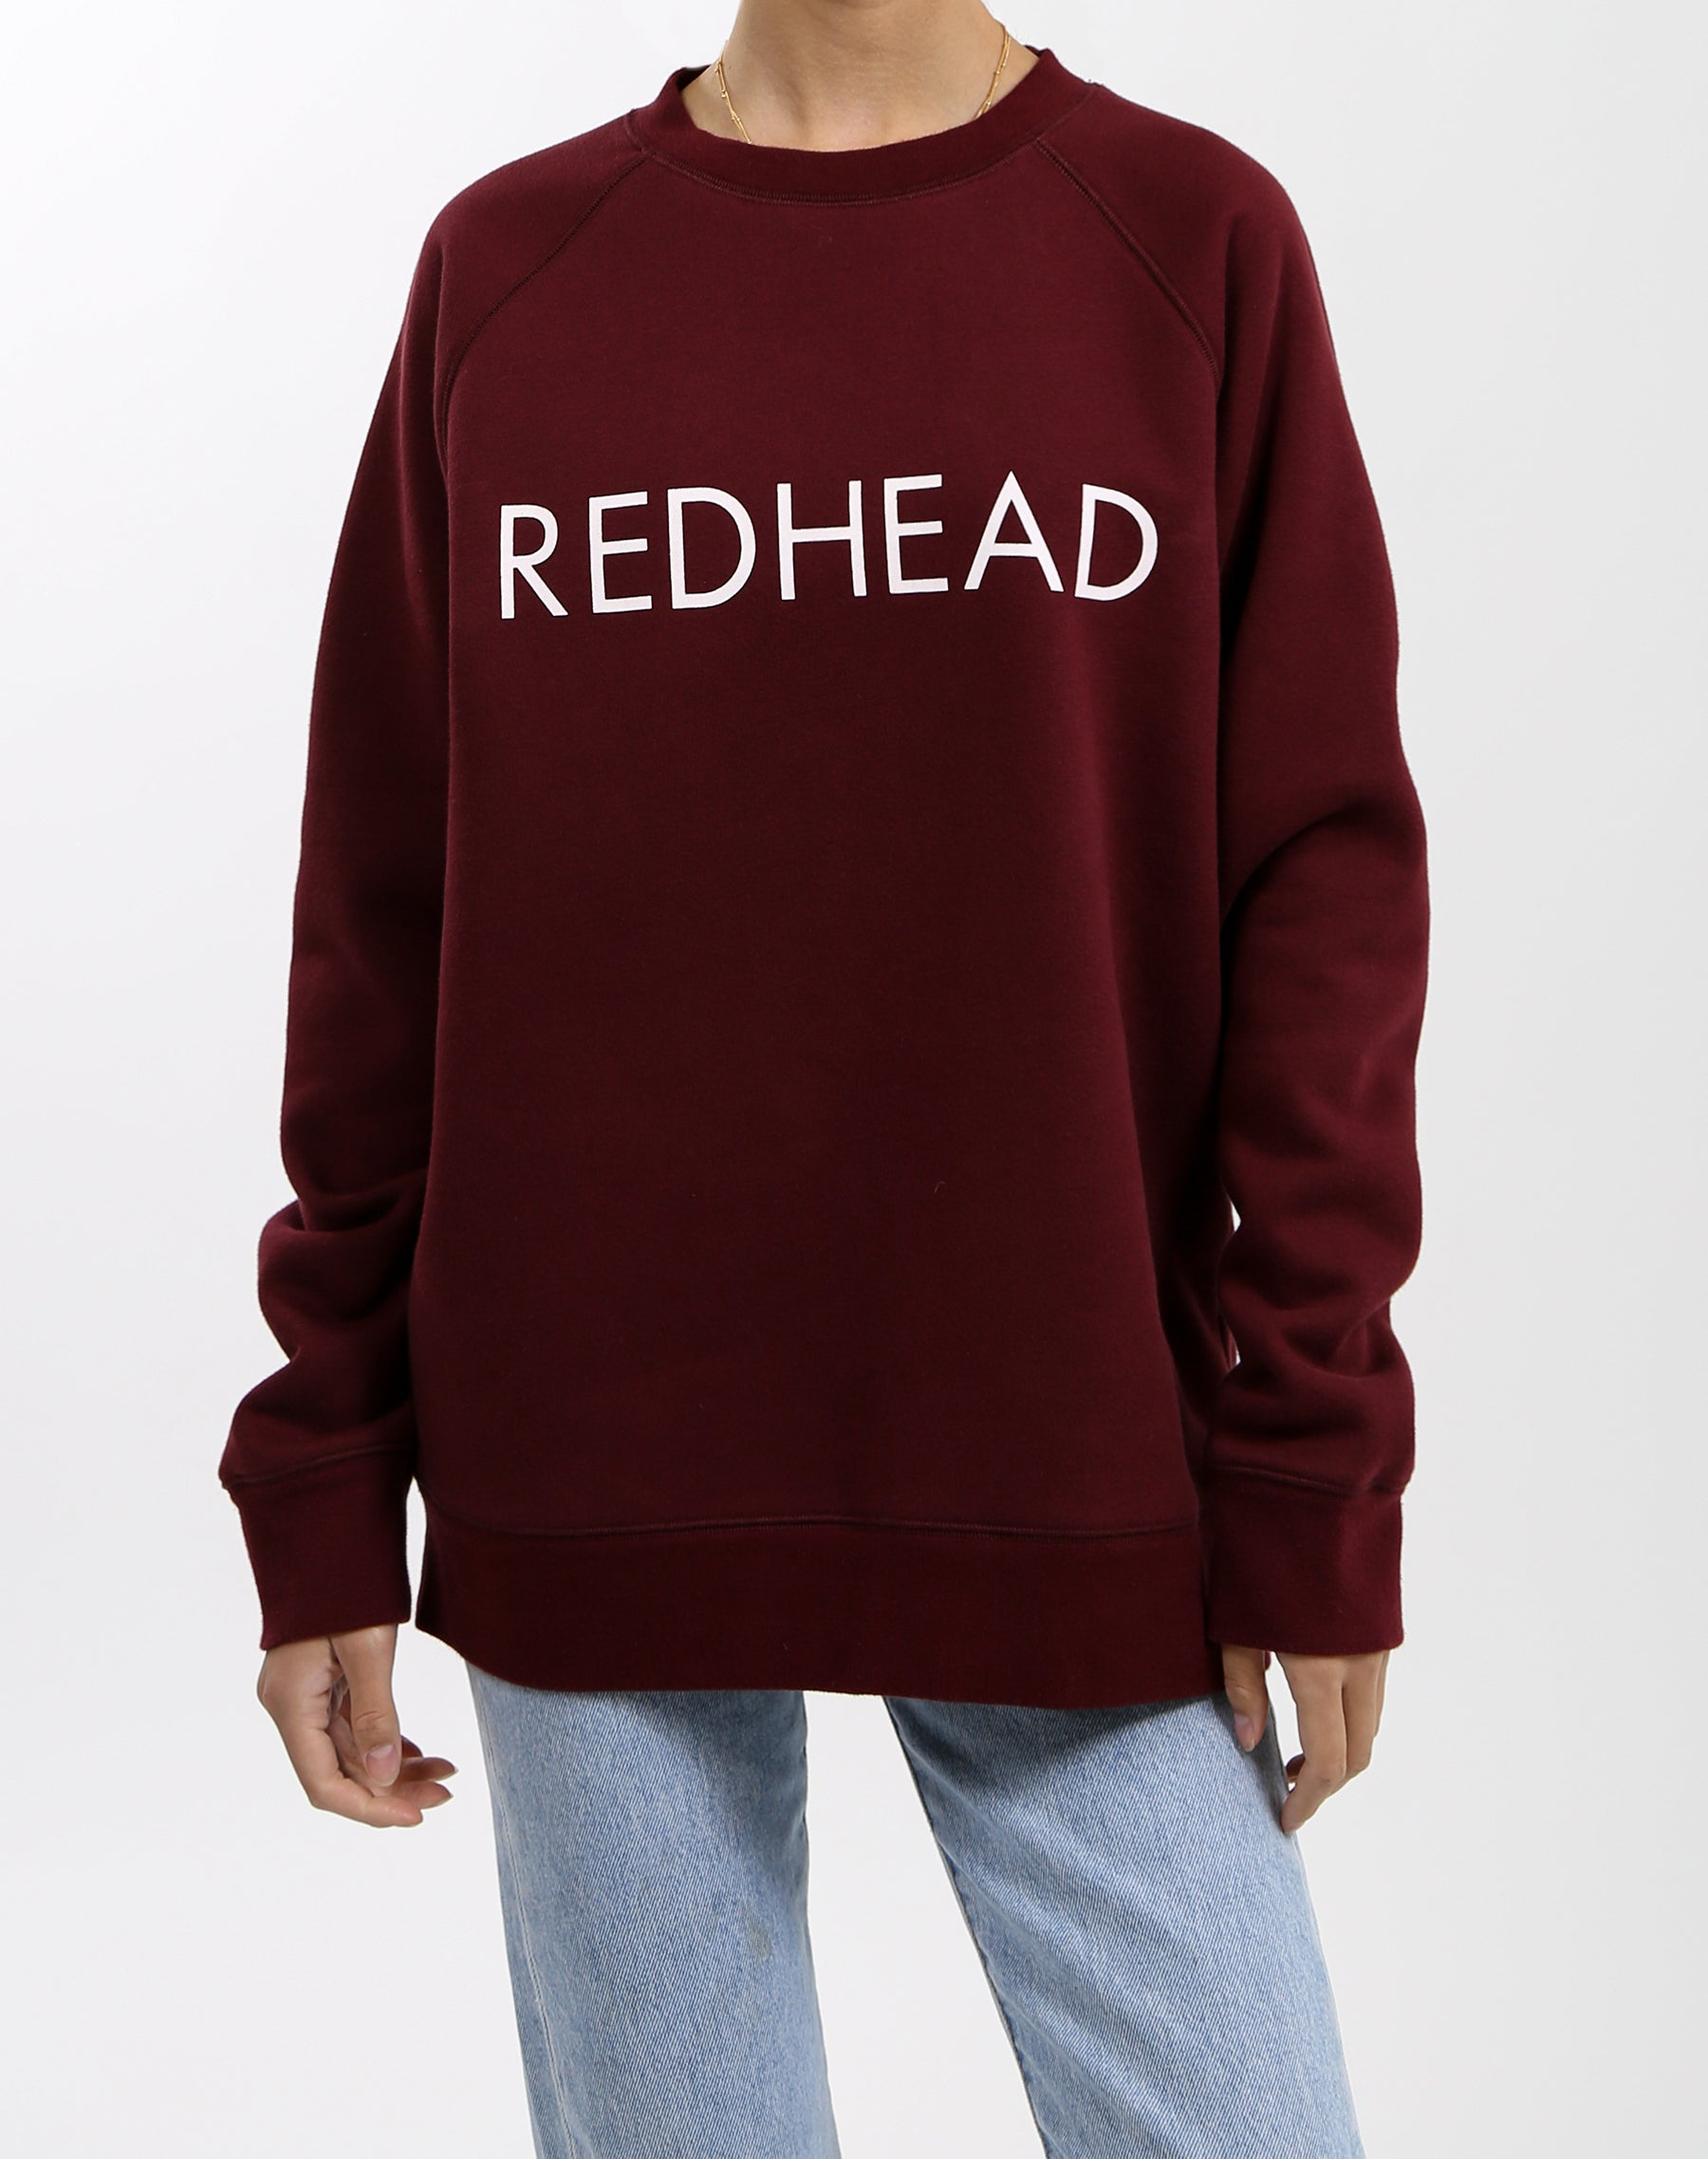 Photo of the Redhead classic crew neck sweatshirt in burgundy by Brunette the Label.